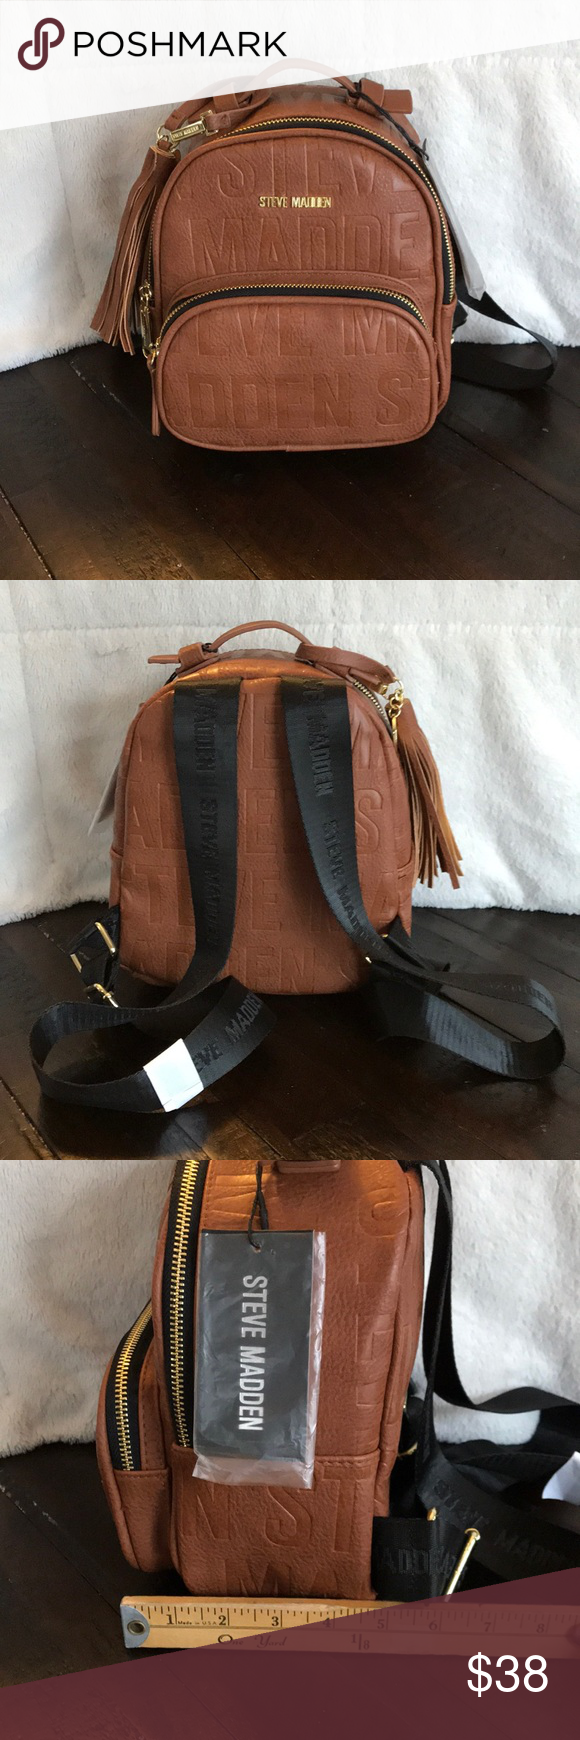 "9bdbf2f6530c Signature Logo Steve Madden Mini Backpack NWT Women s signature logo Steve  Madden Mini Camel Backpack  Purse with Tassel Length. 8"" Width (including  front ..."